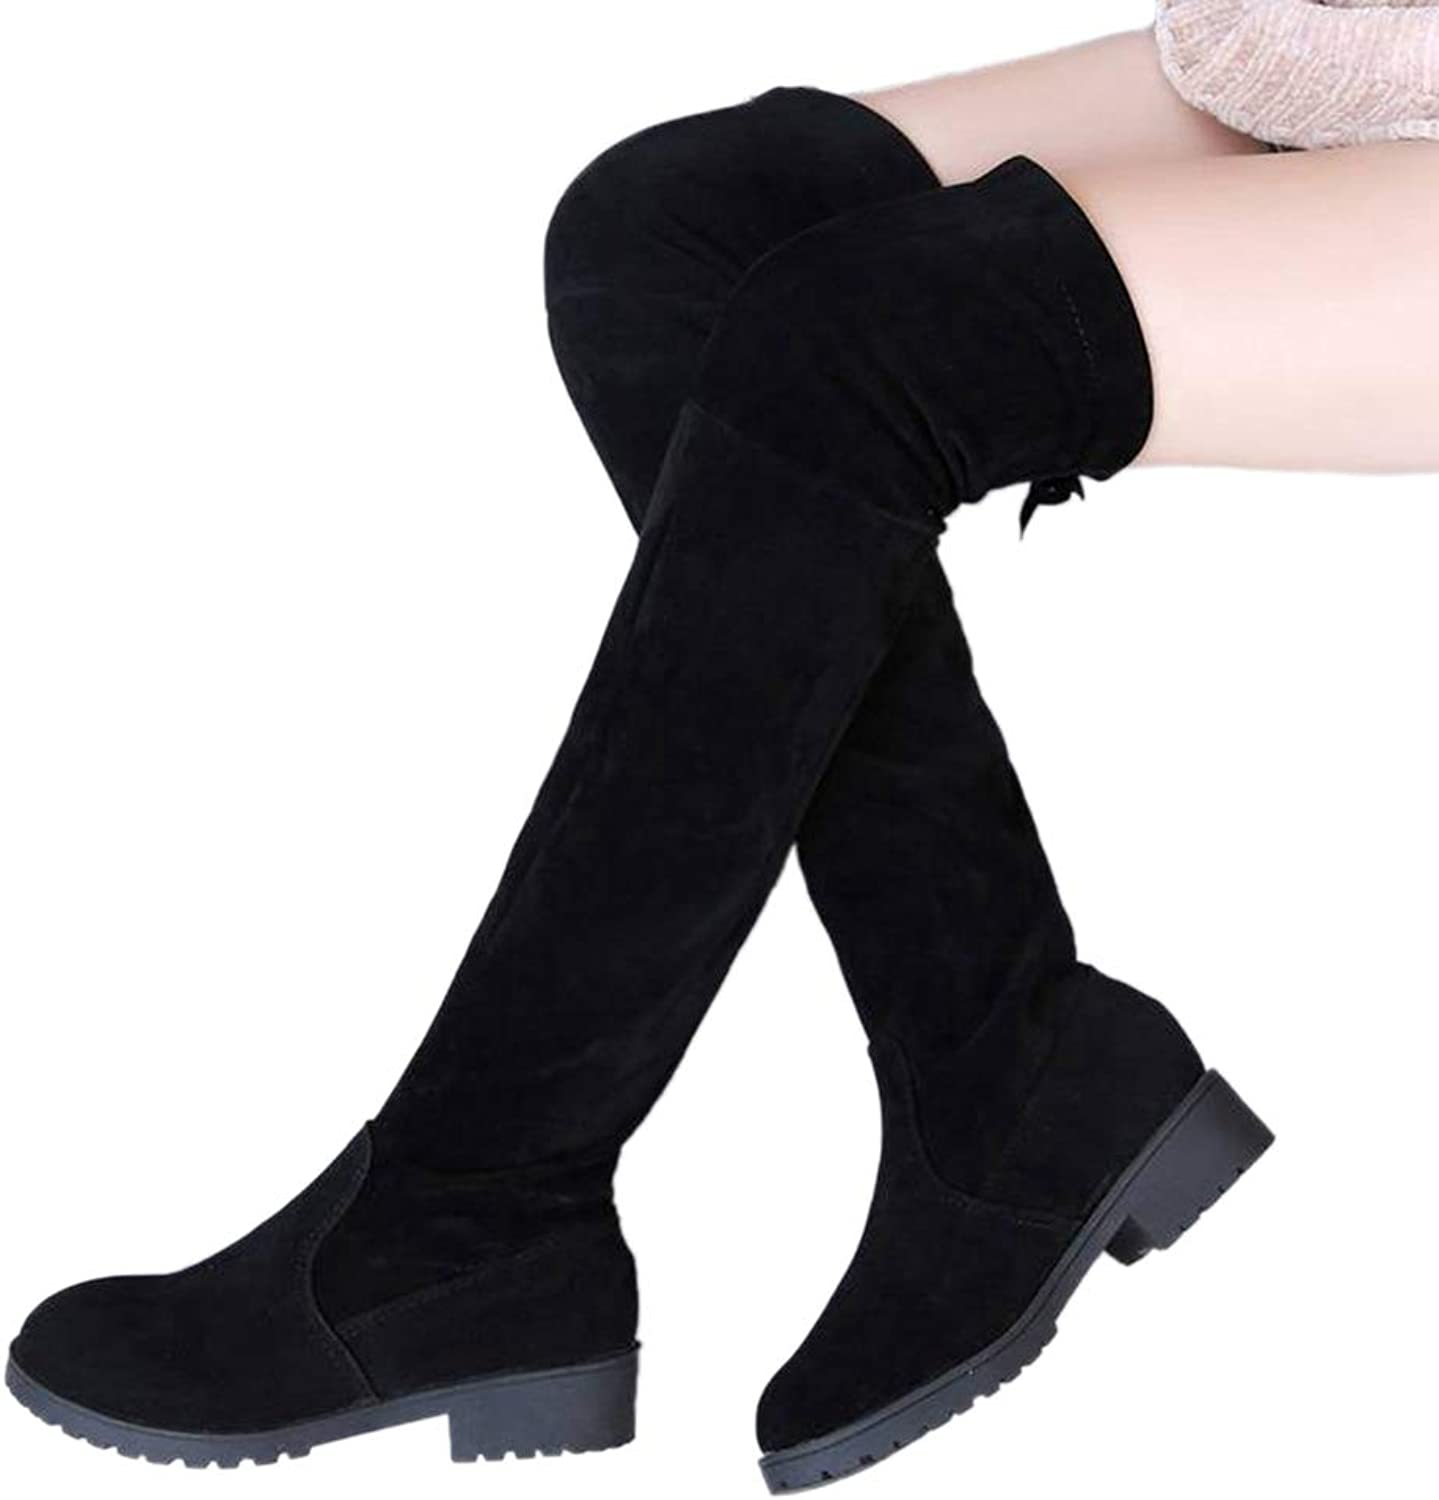 Knee High shoes for Women Square Low Heel Ladies Over The Knee Black Round Toe Motorcycle Thigh Boots